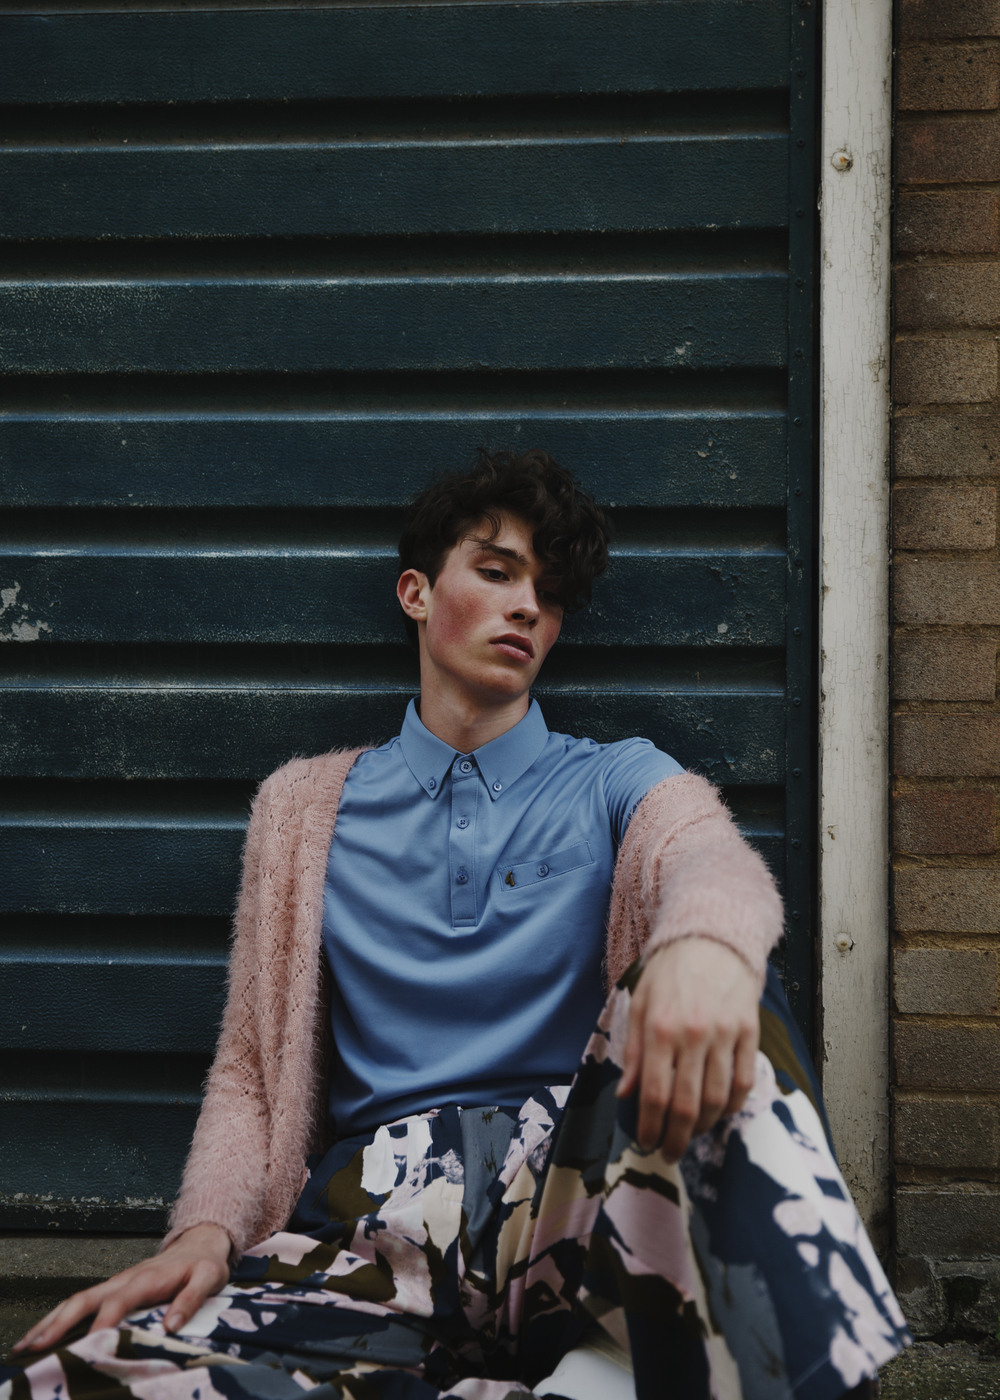 Cardigan by Bellfield / Shirt by Gabicci / Trousers by Native Youth